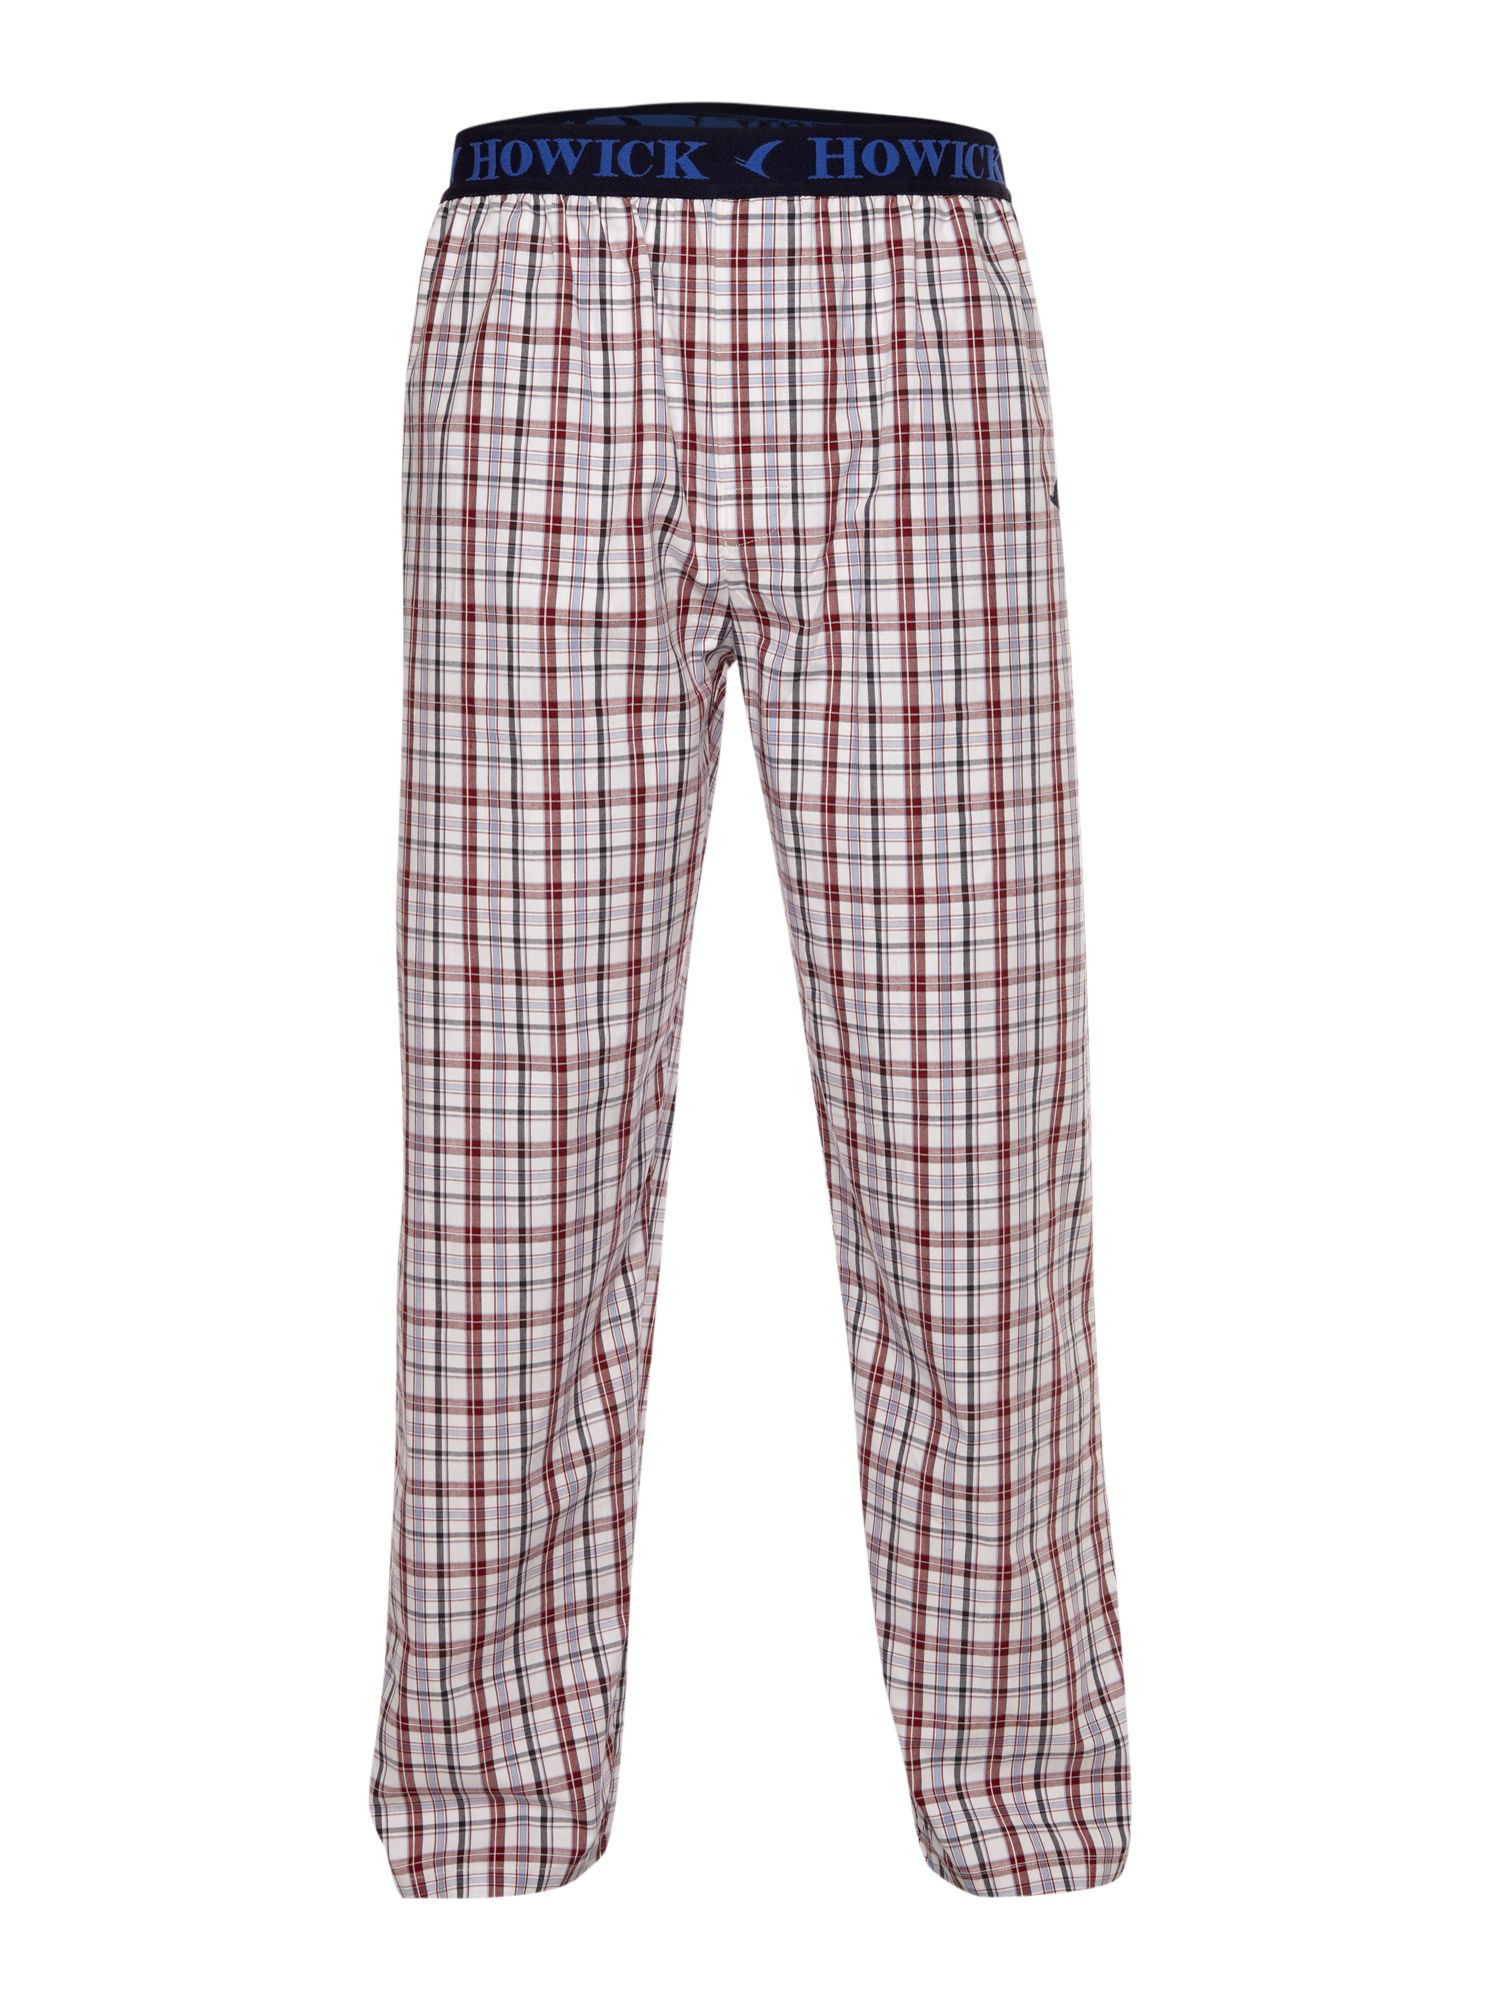 Checked pj pant